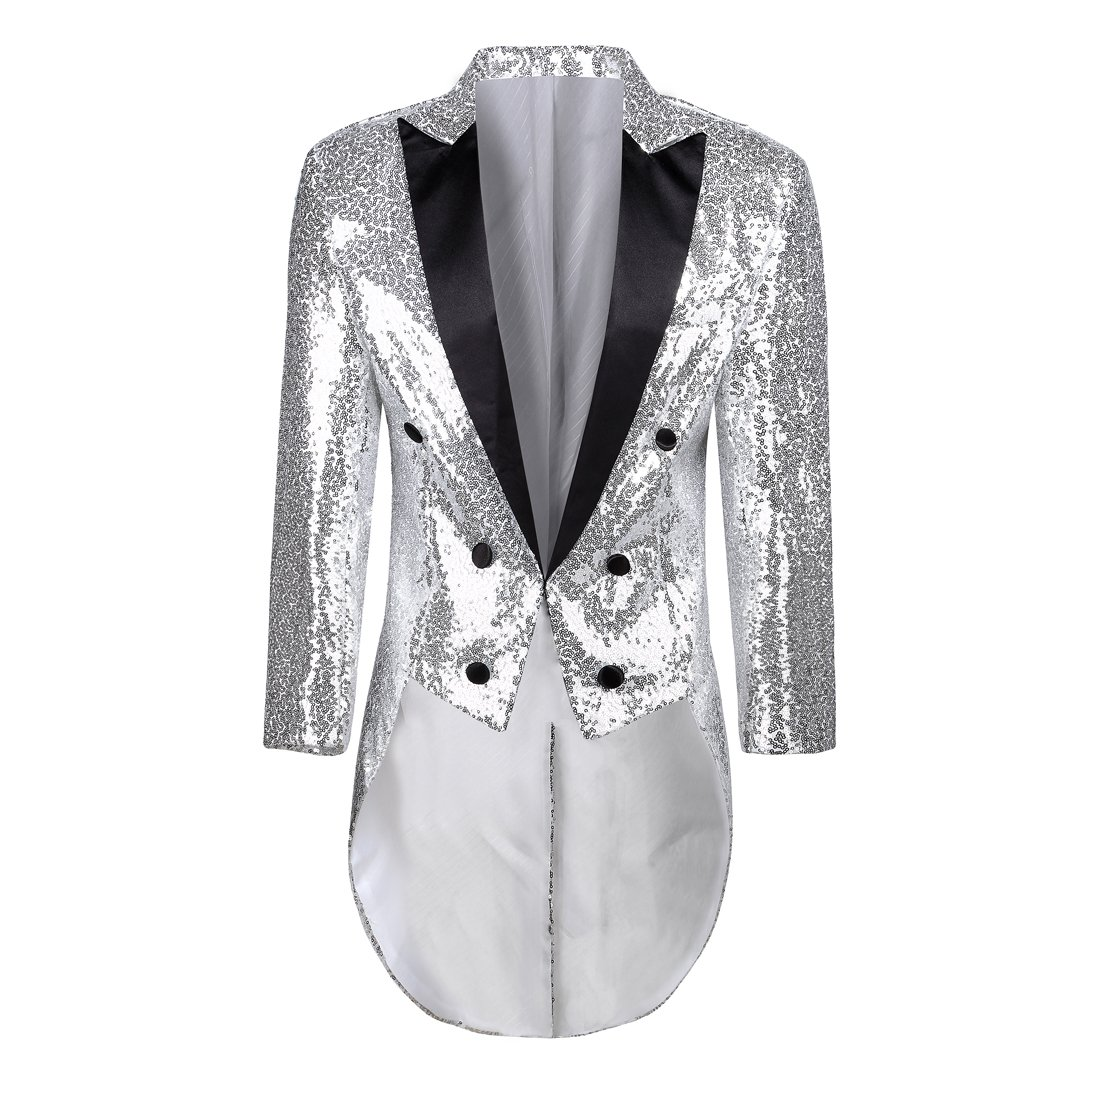 PYJTRL Mens Fashion Colorful Sequins Tailcoat Tuxedo (Silver, S/38R) by PYJTRL